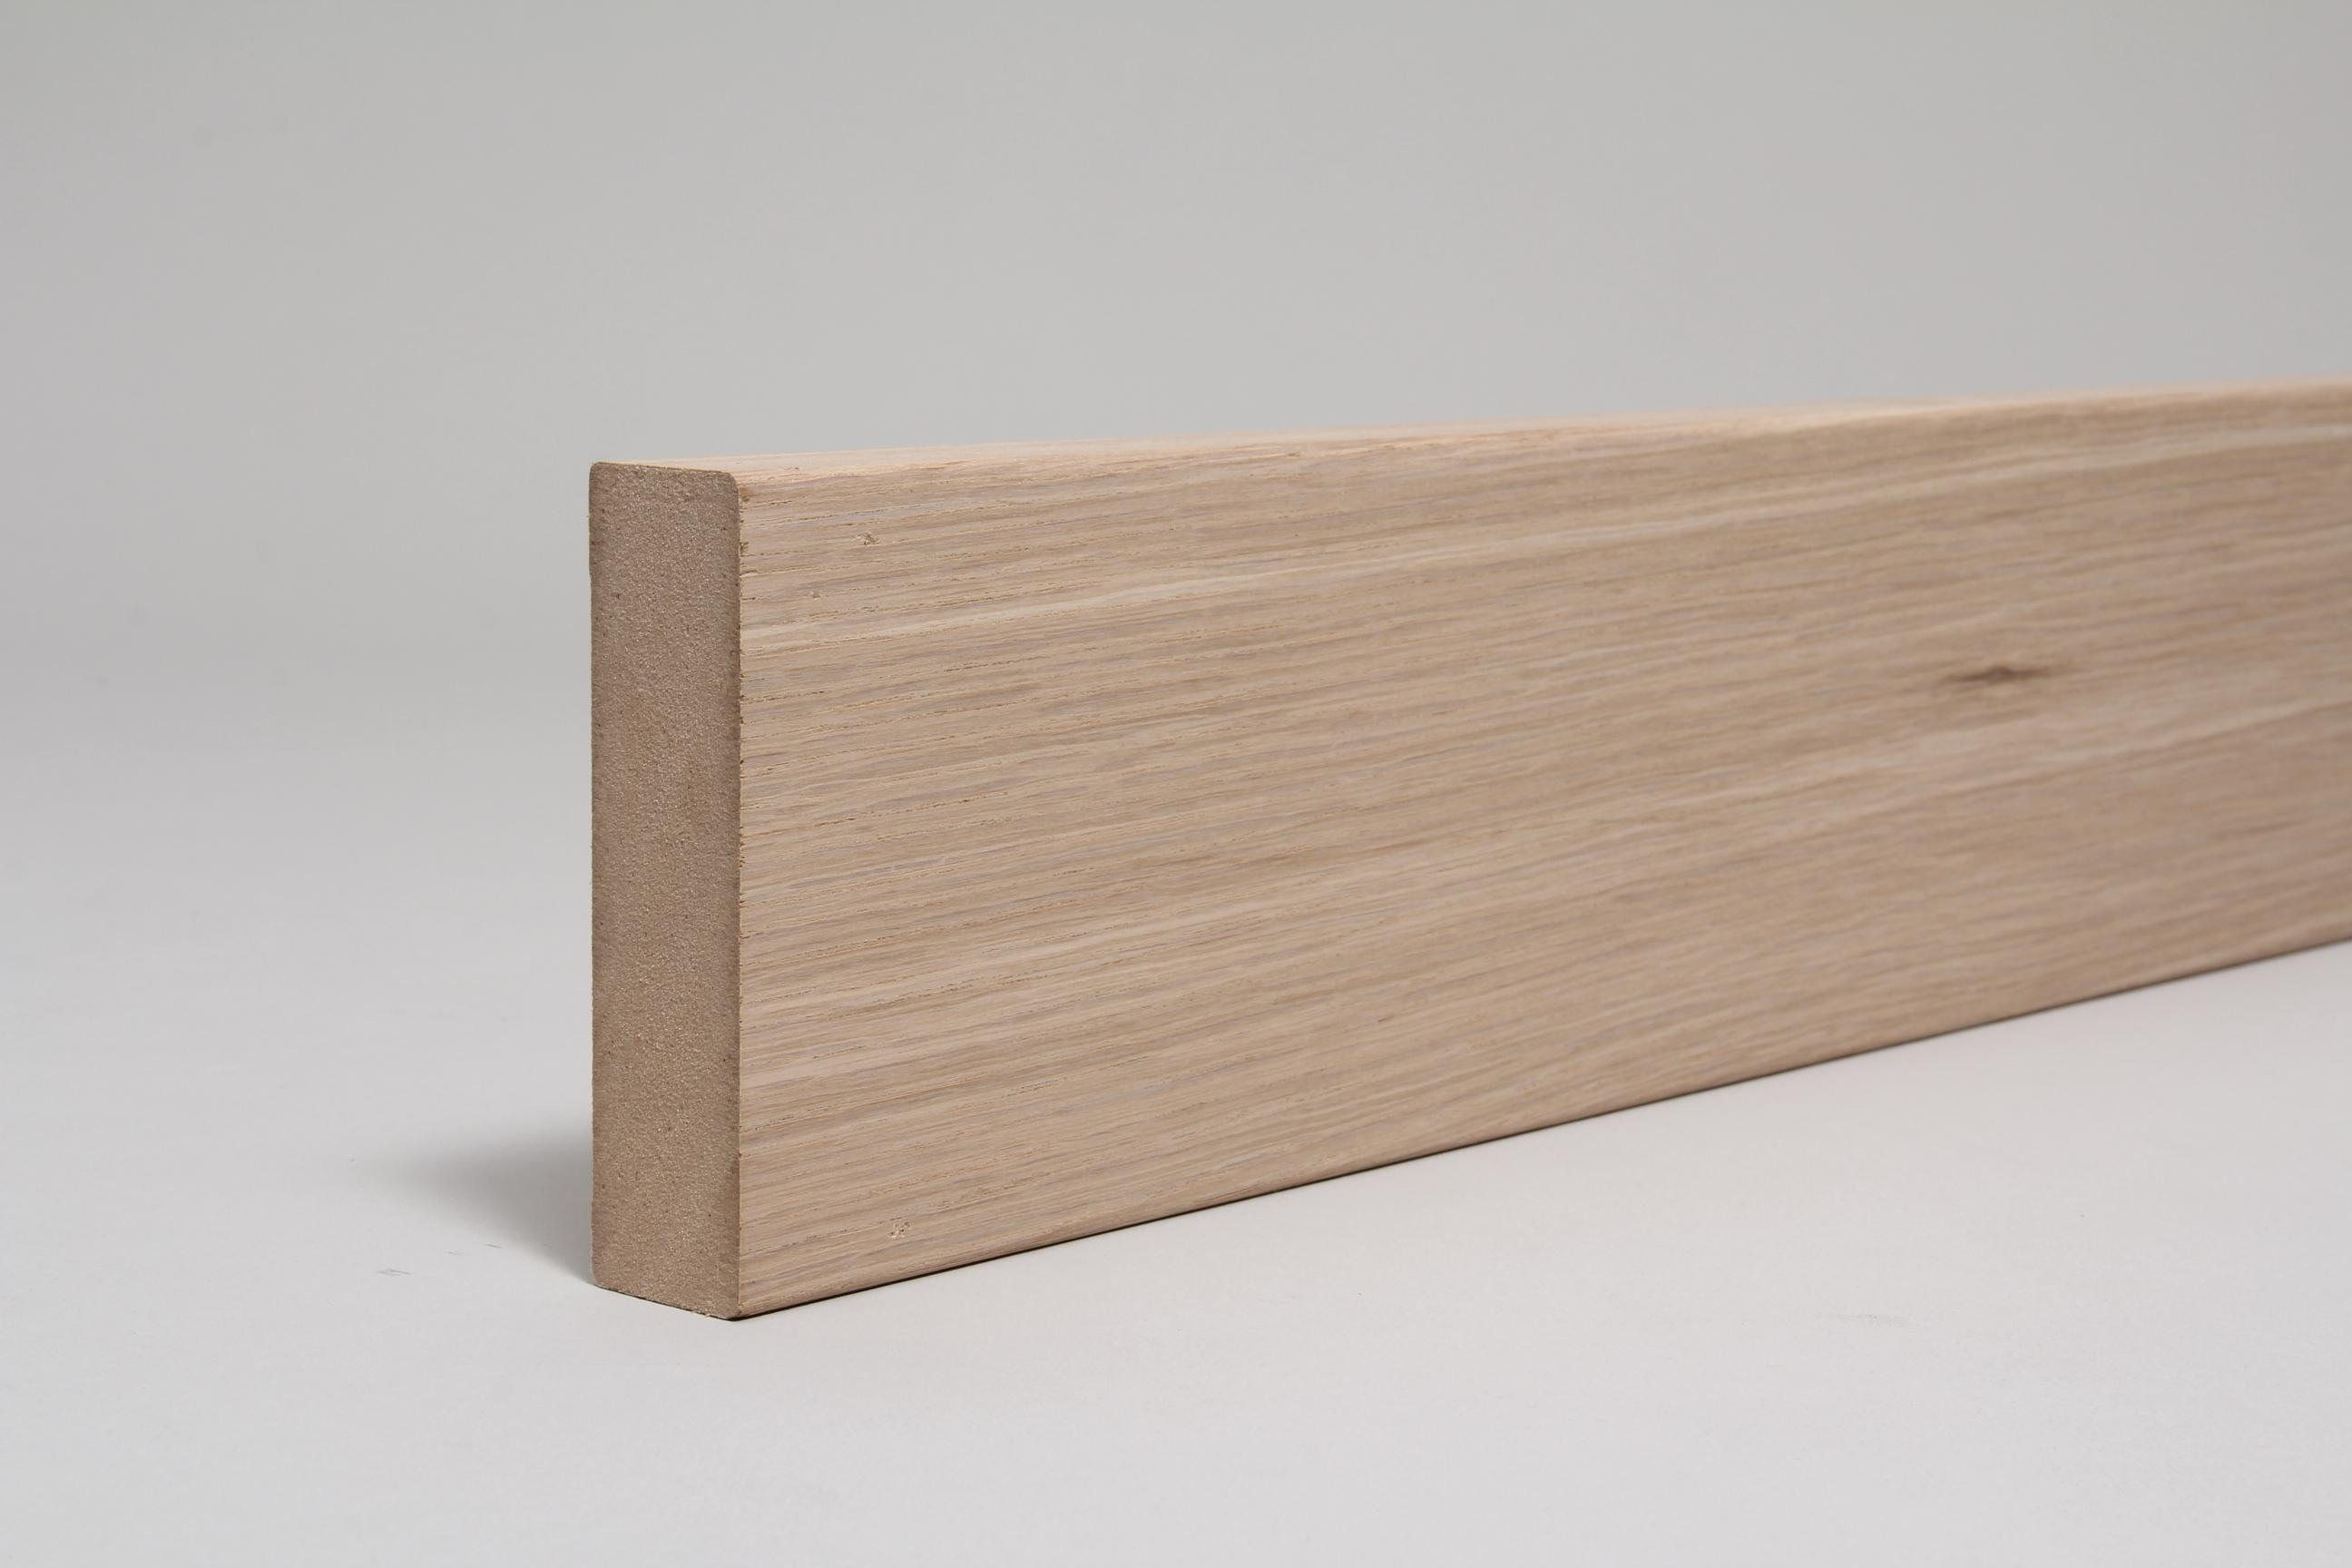 Door Lining Set 25mm x 90mm Veneered American White Oak